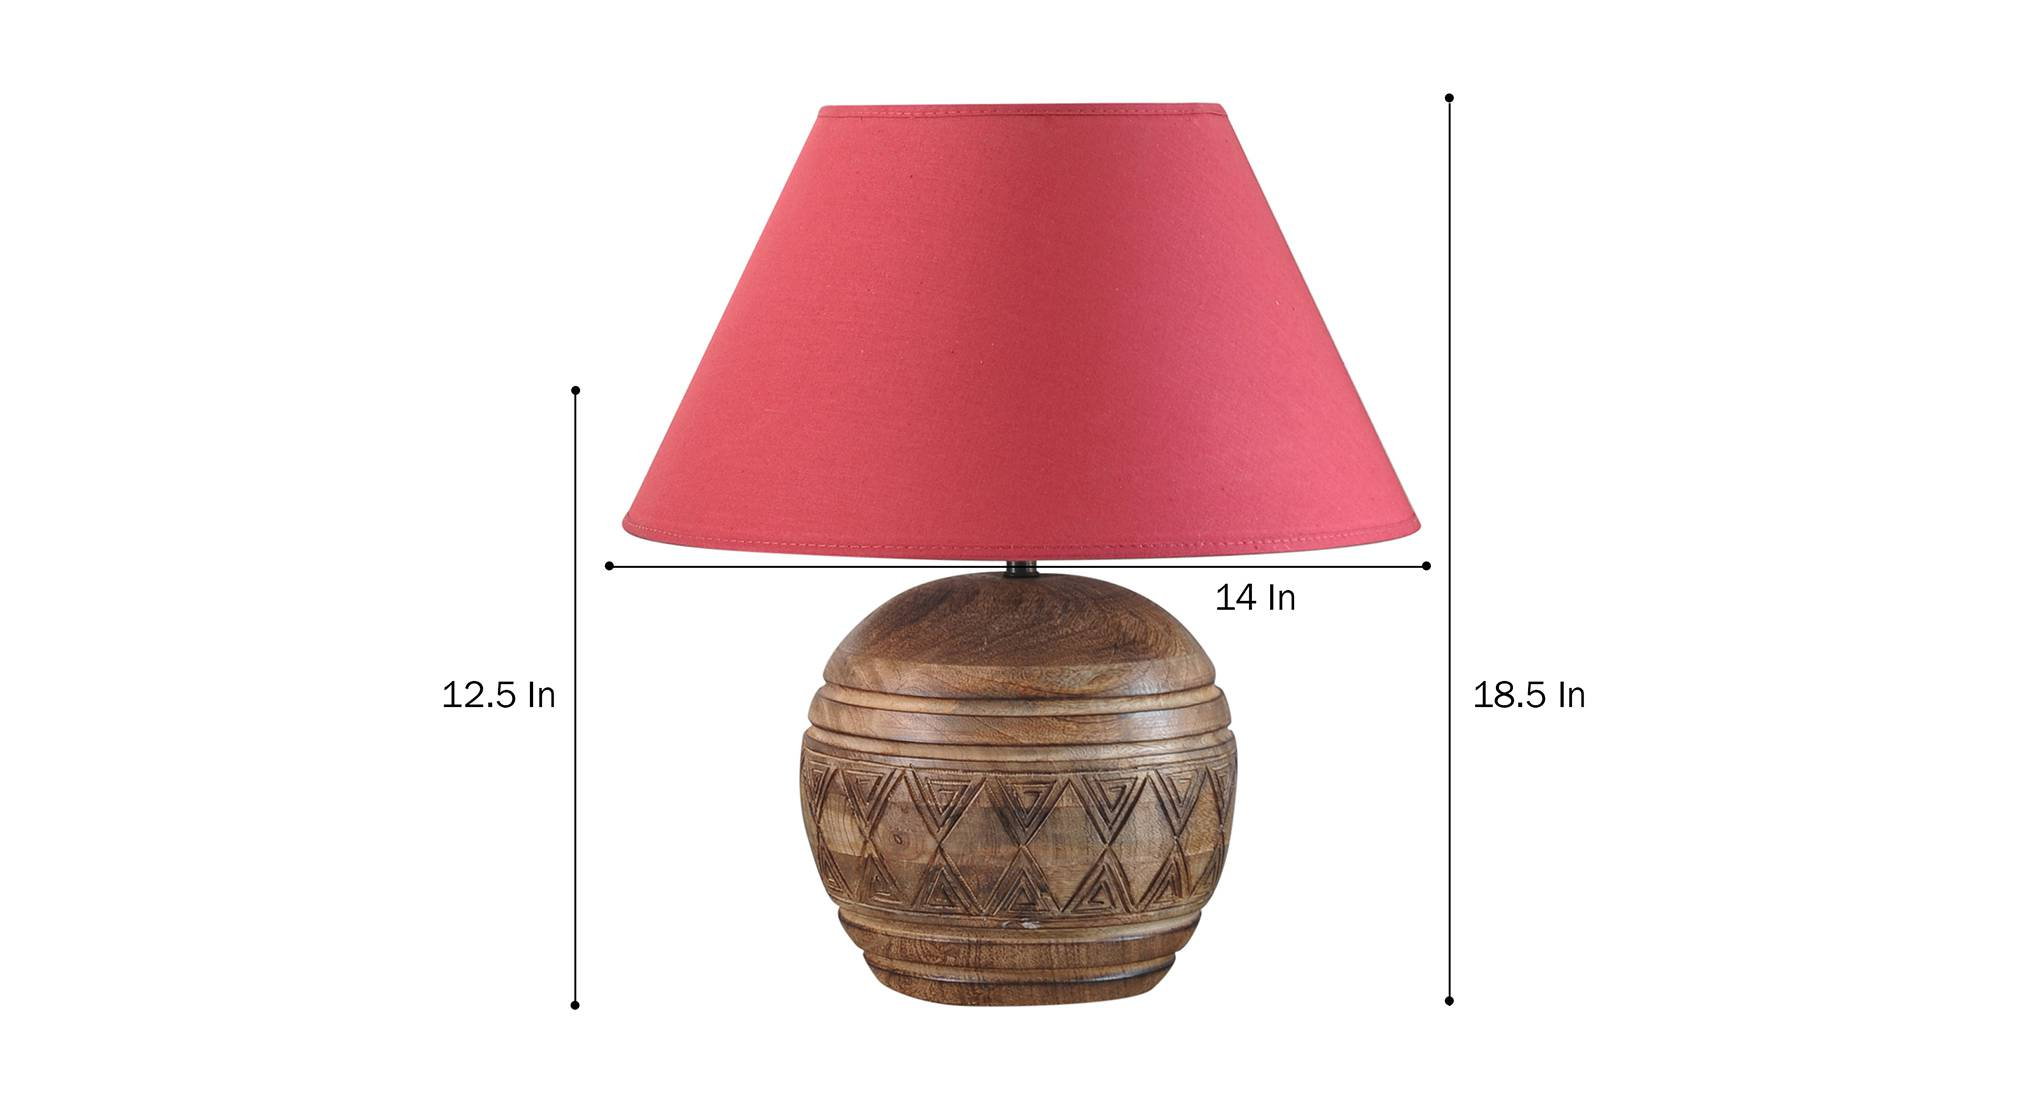 Mountwill br table lamp 5